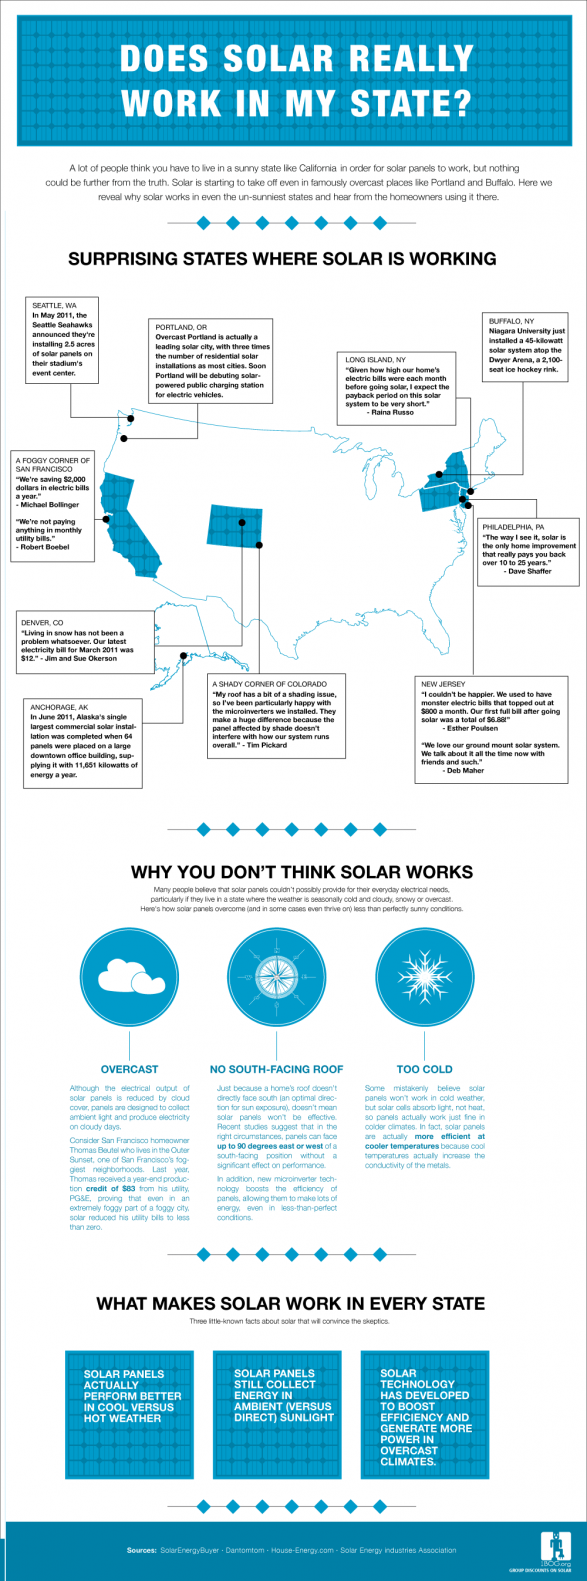 DoesSolarReallyWorkInMyState 4e5e9105c1812 w587 Does solar really work in my state? (Infographic)